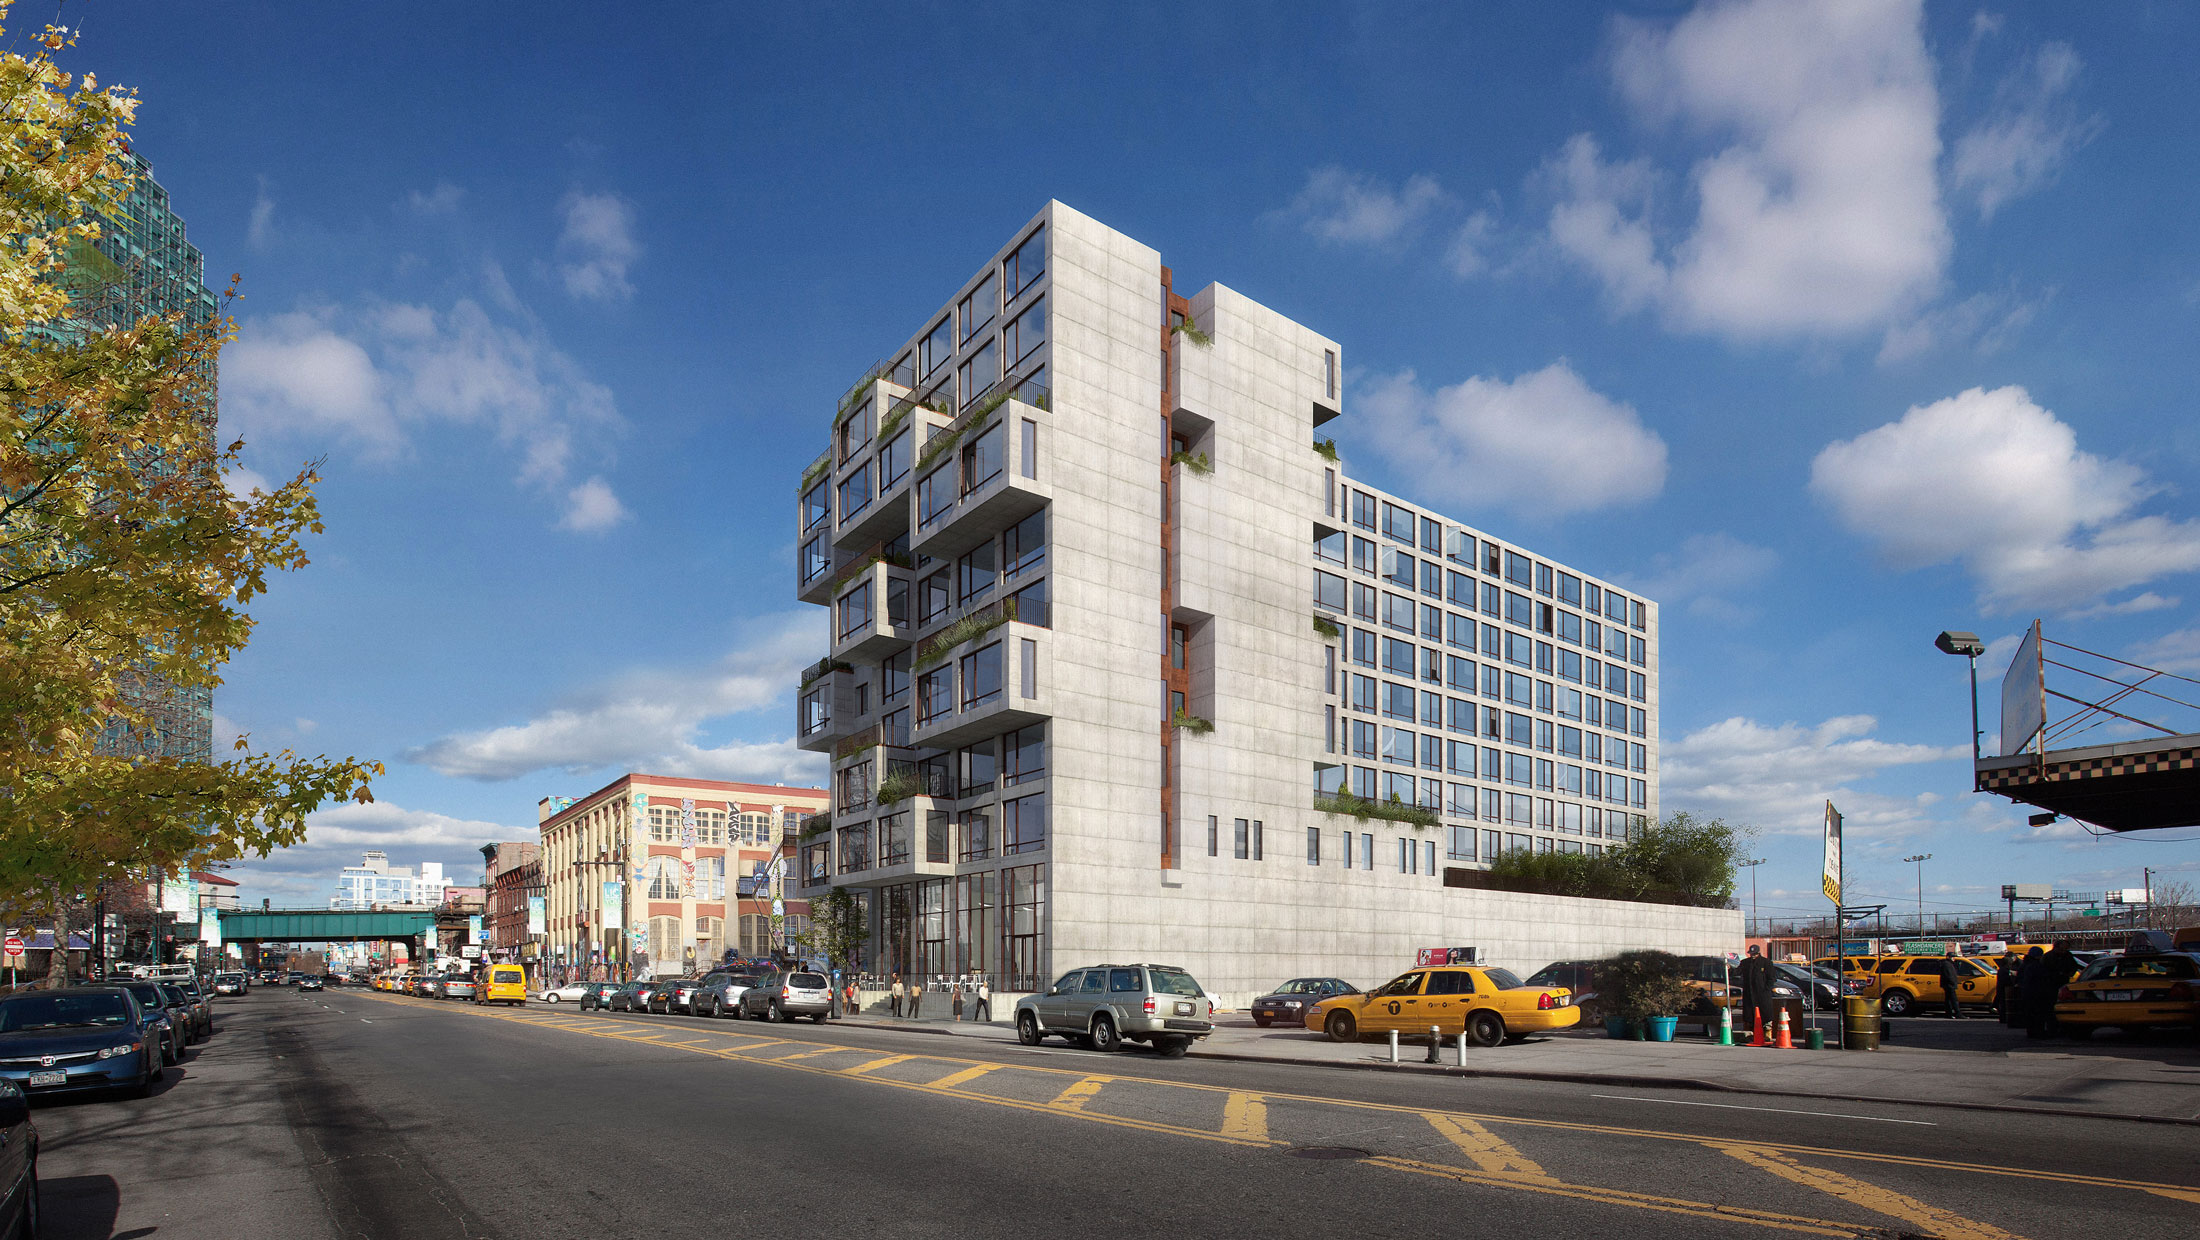 Architectural Rendering of the exterior of the 22-22 Jackson Avenue project located in Long Island City, Queens, New York